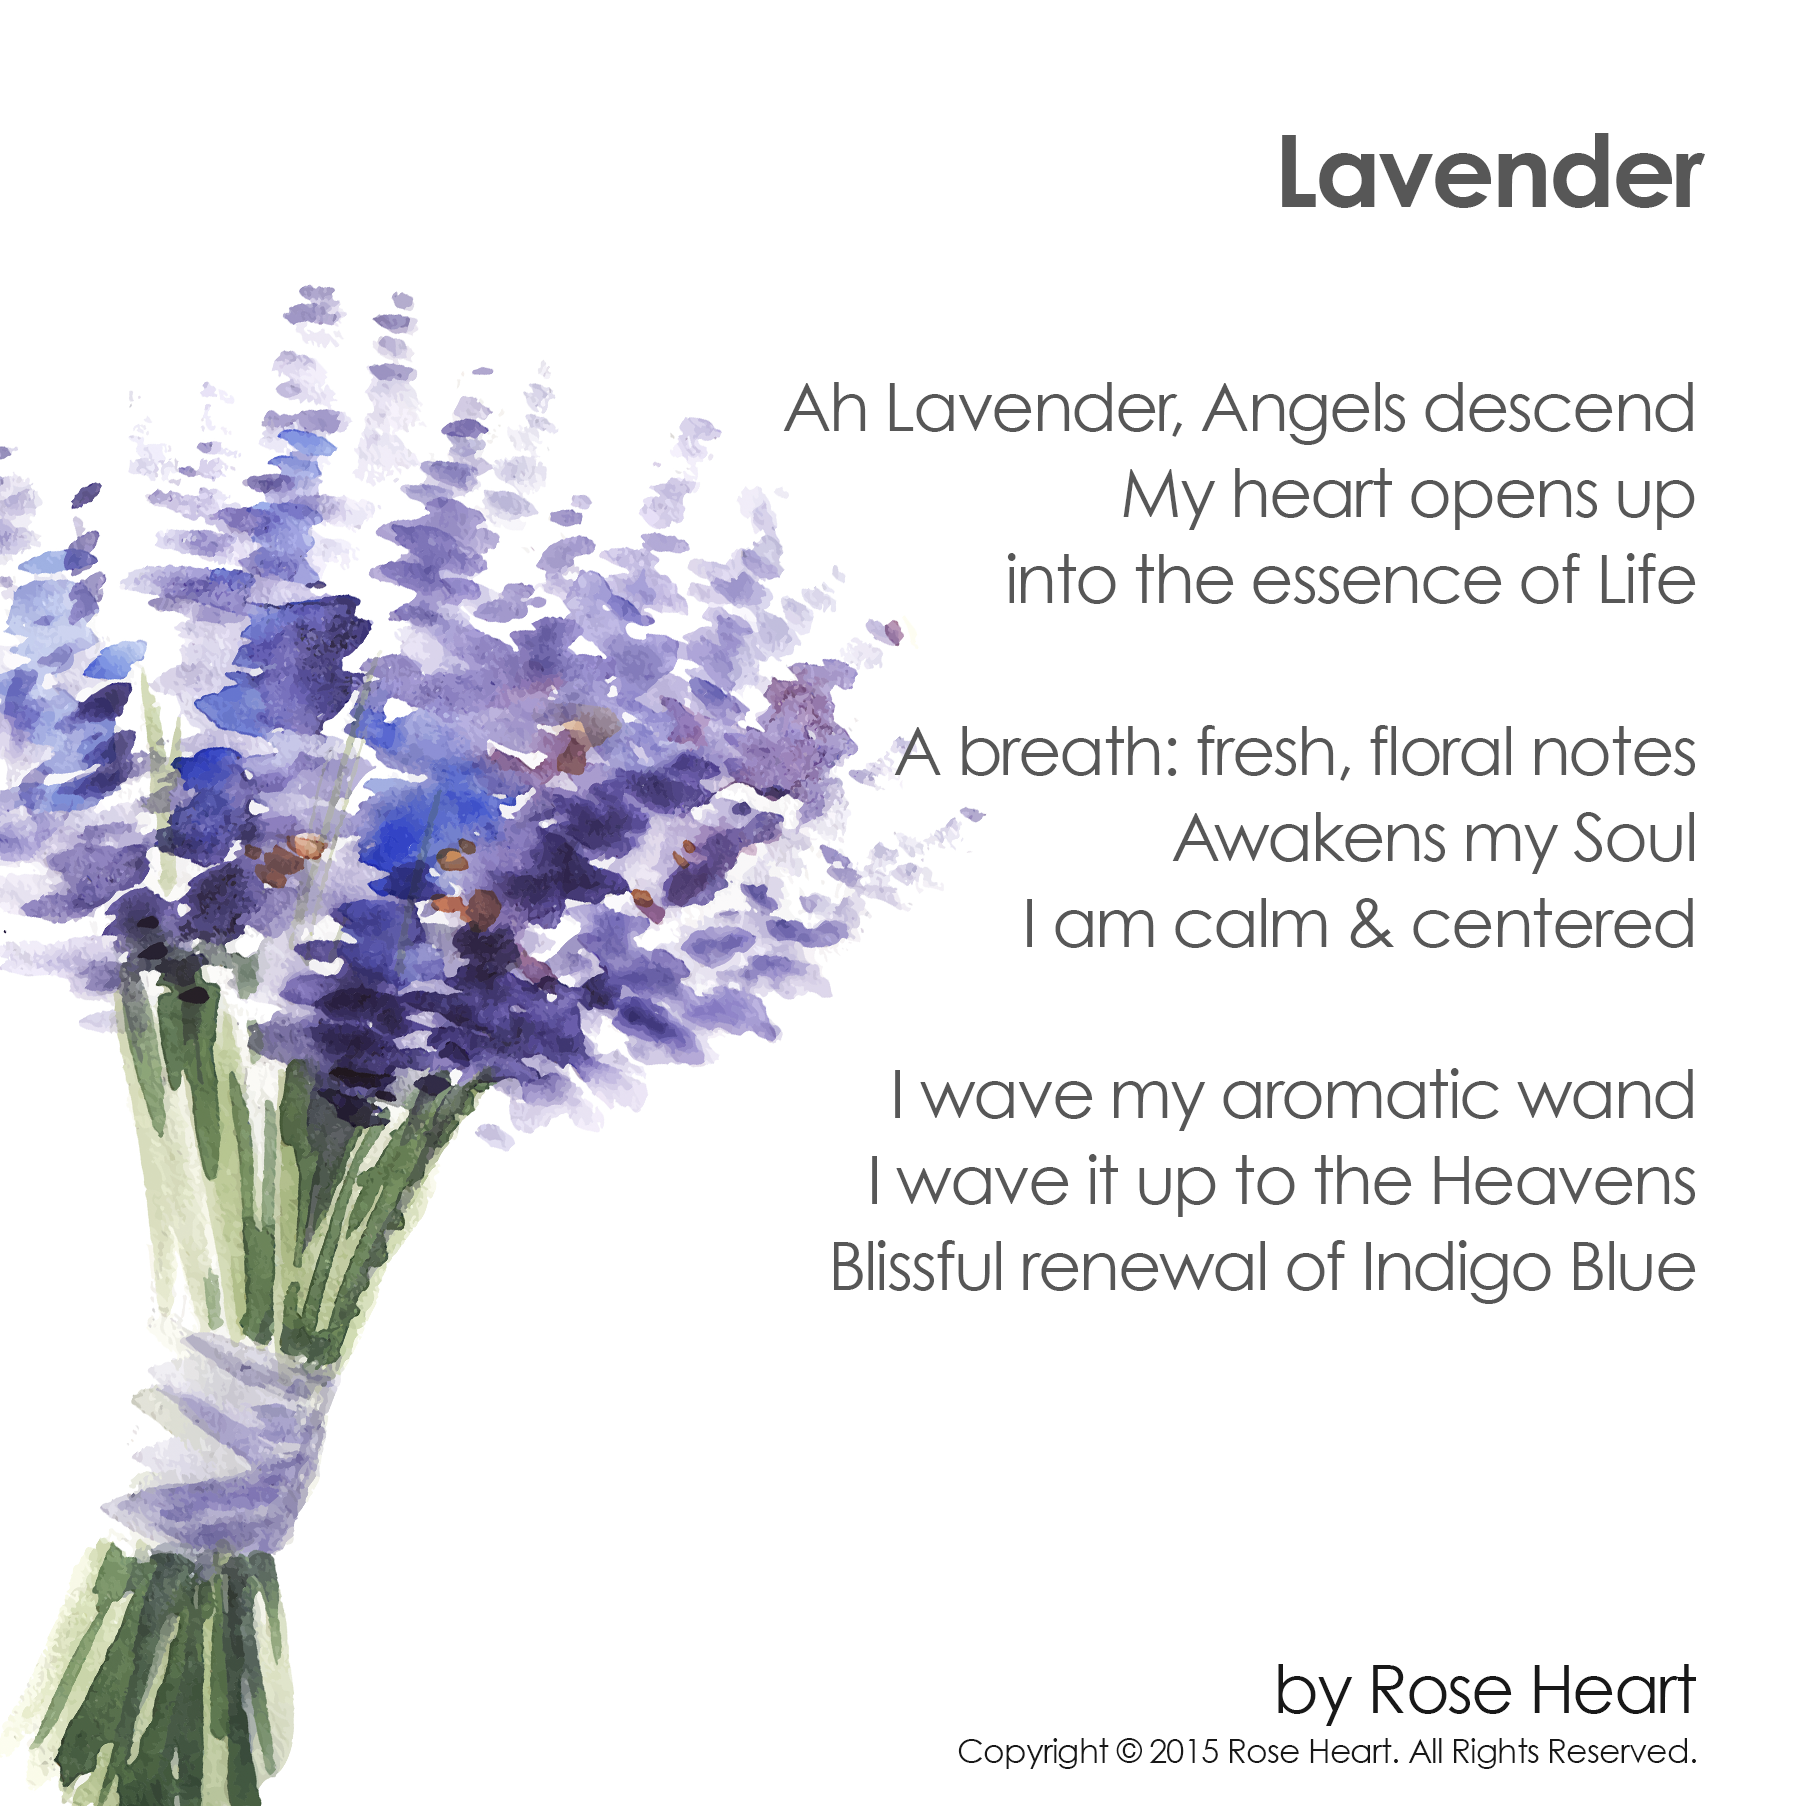 Enjoy This Spiritual Poem About Lavender Let It Soothe Your Spirit In The Same Way Lavender Essential Oil Does Spiritual Poems Lavender Quotes Flower Poem